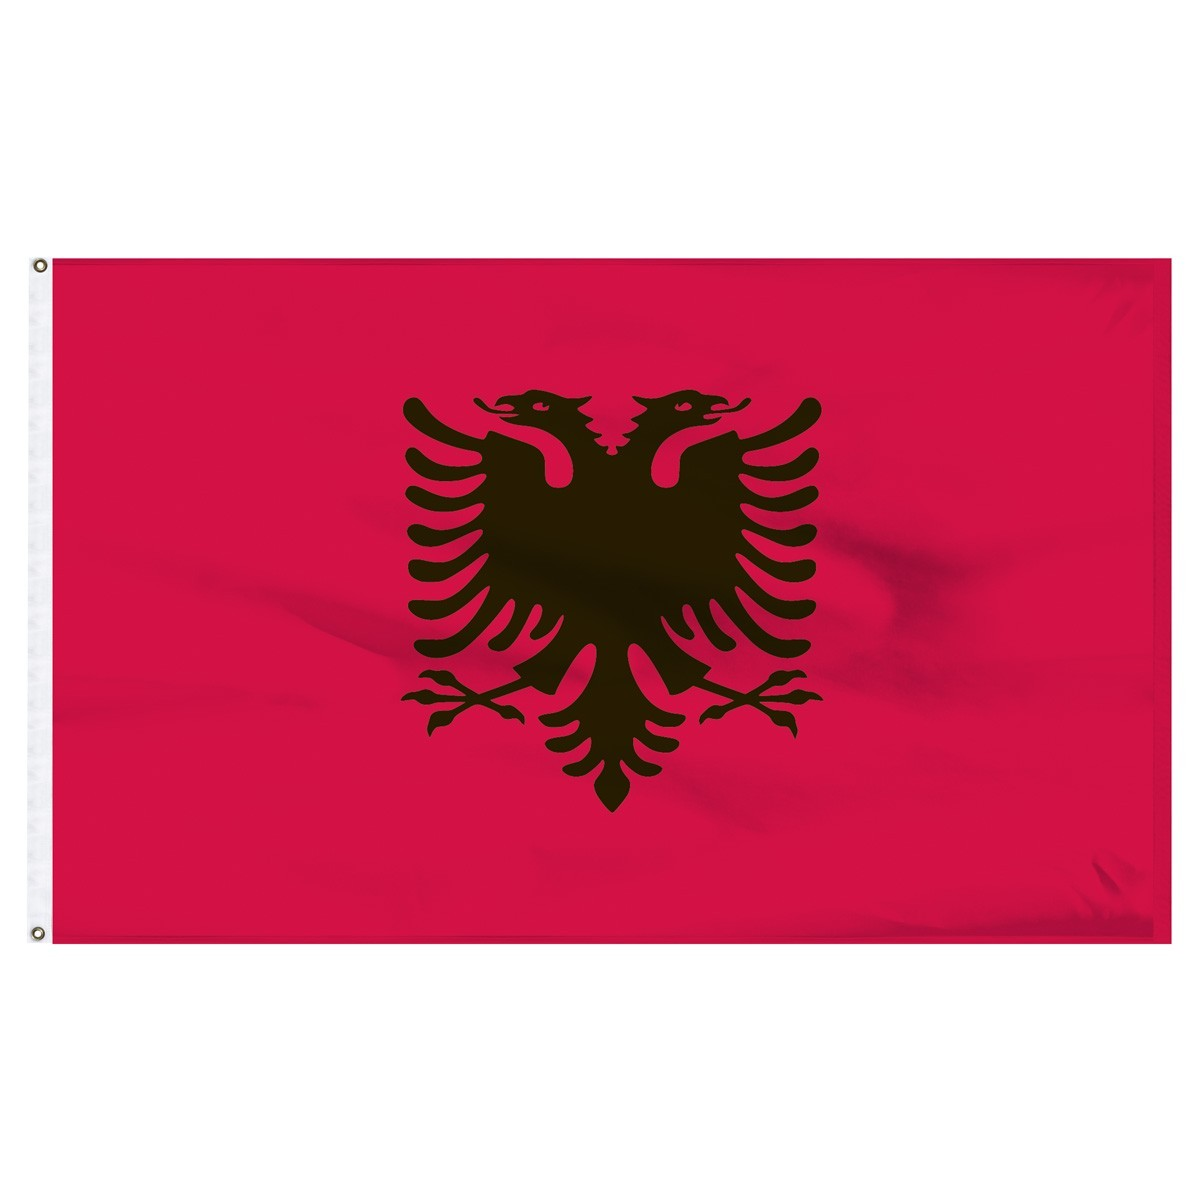 Albania 5' x 8' Outdoor Nylon Country Flag